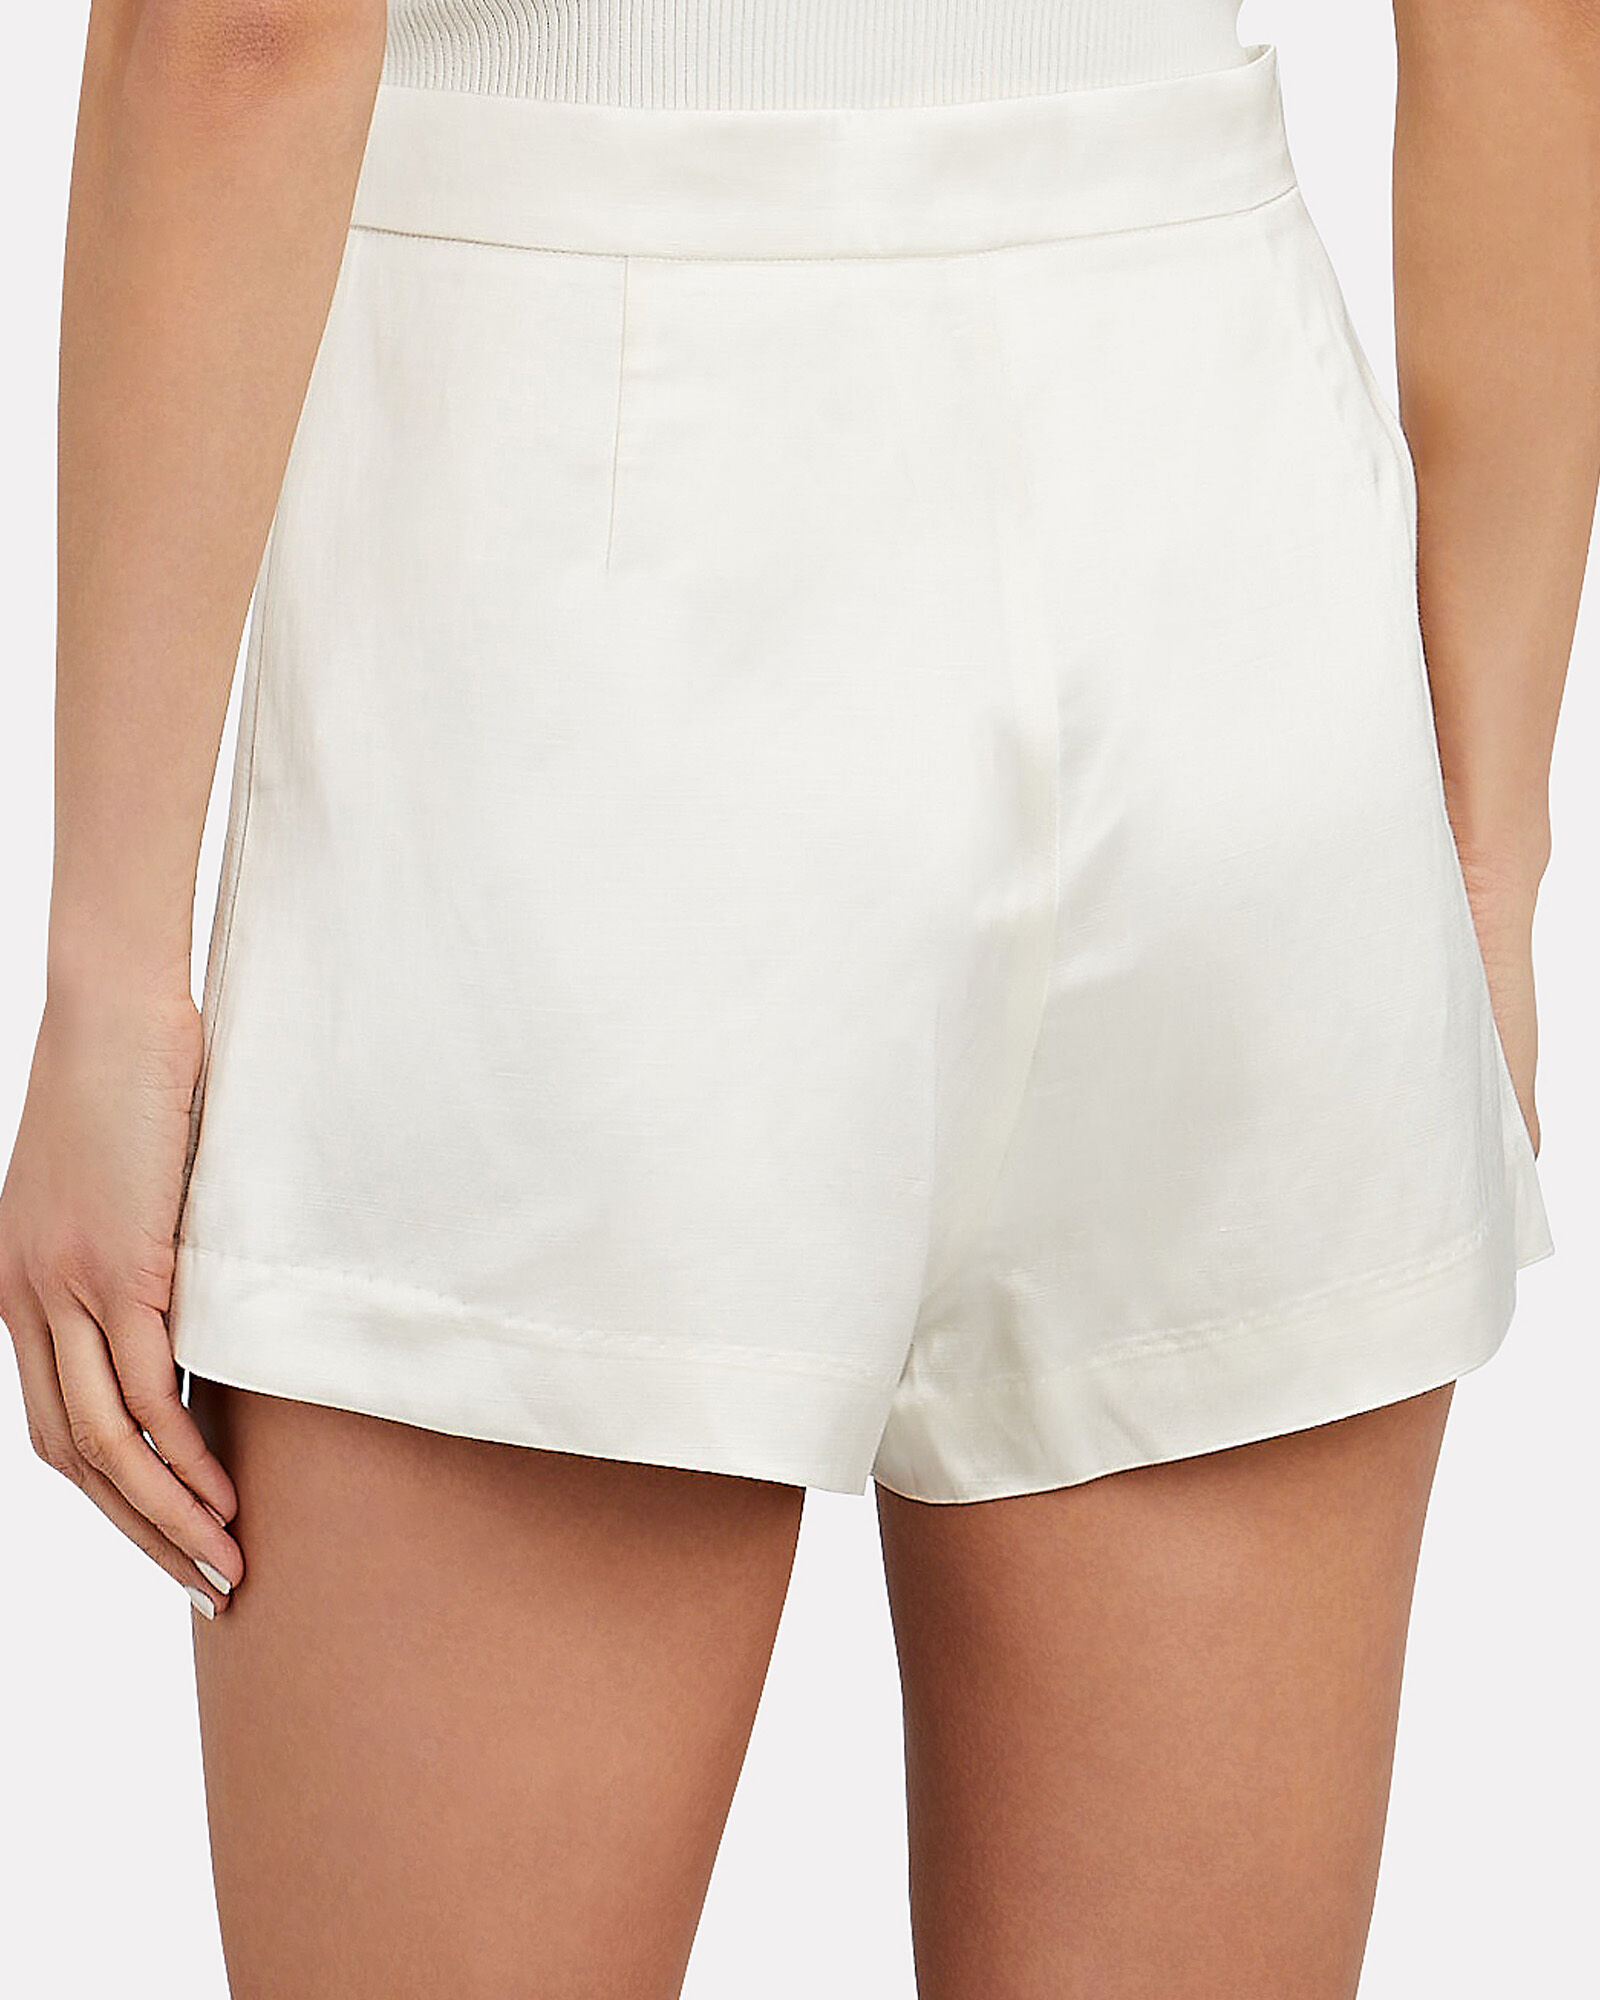 Eden Satin Shorts, IVORY, hi-res